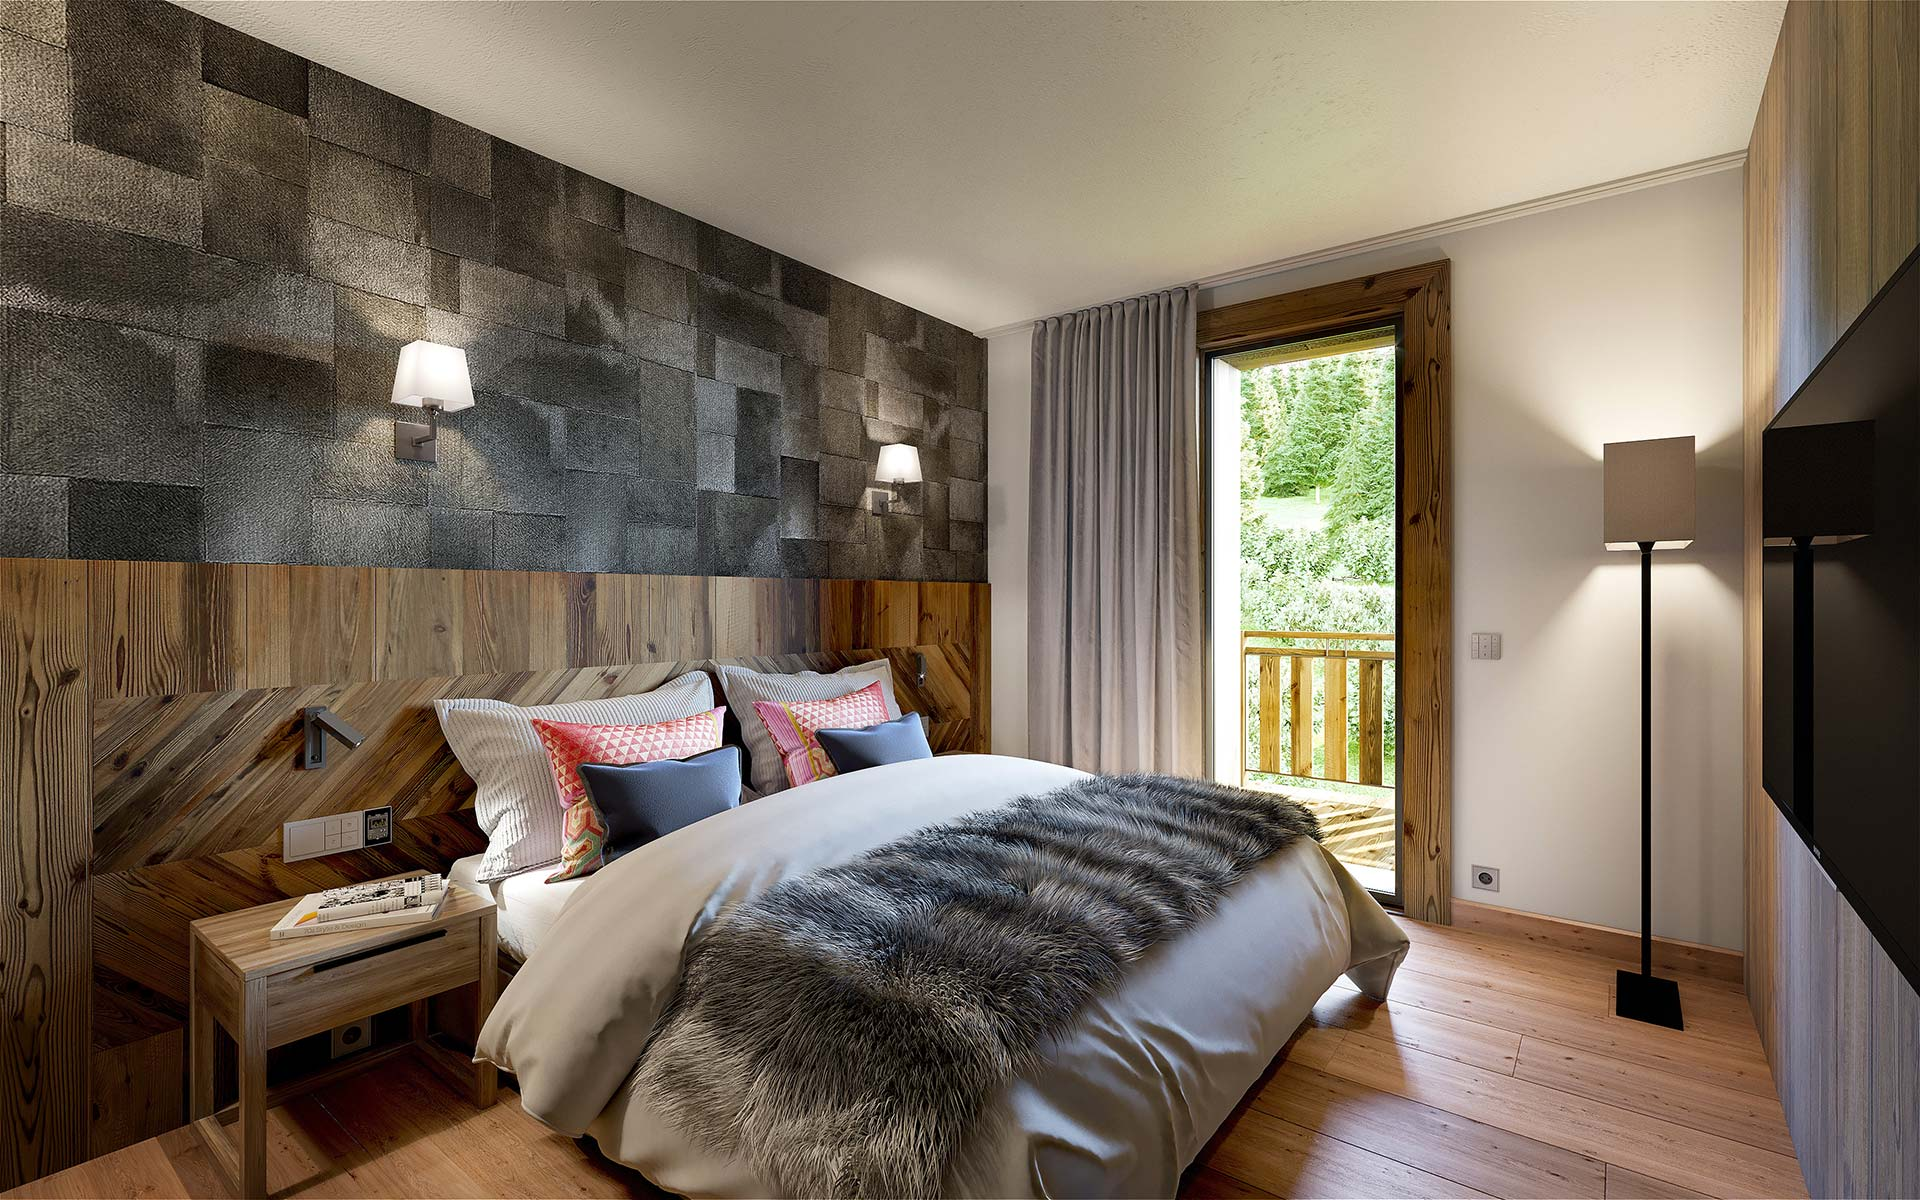 3D interior render of a chalet bedroom